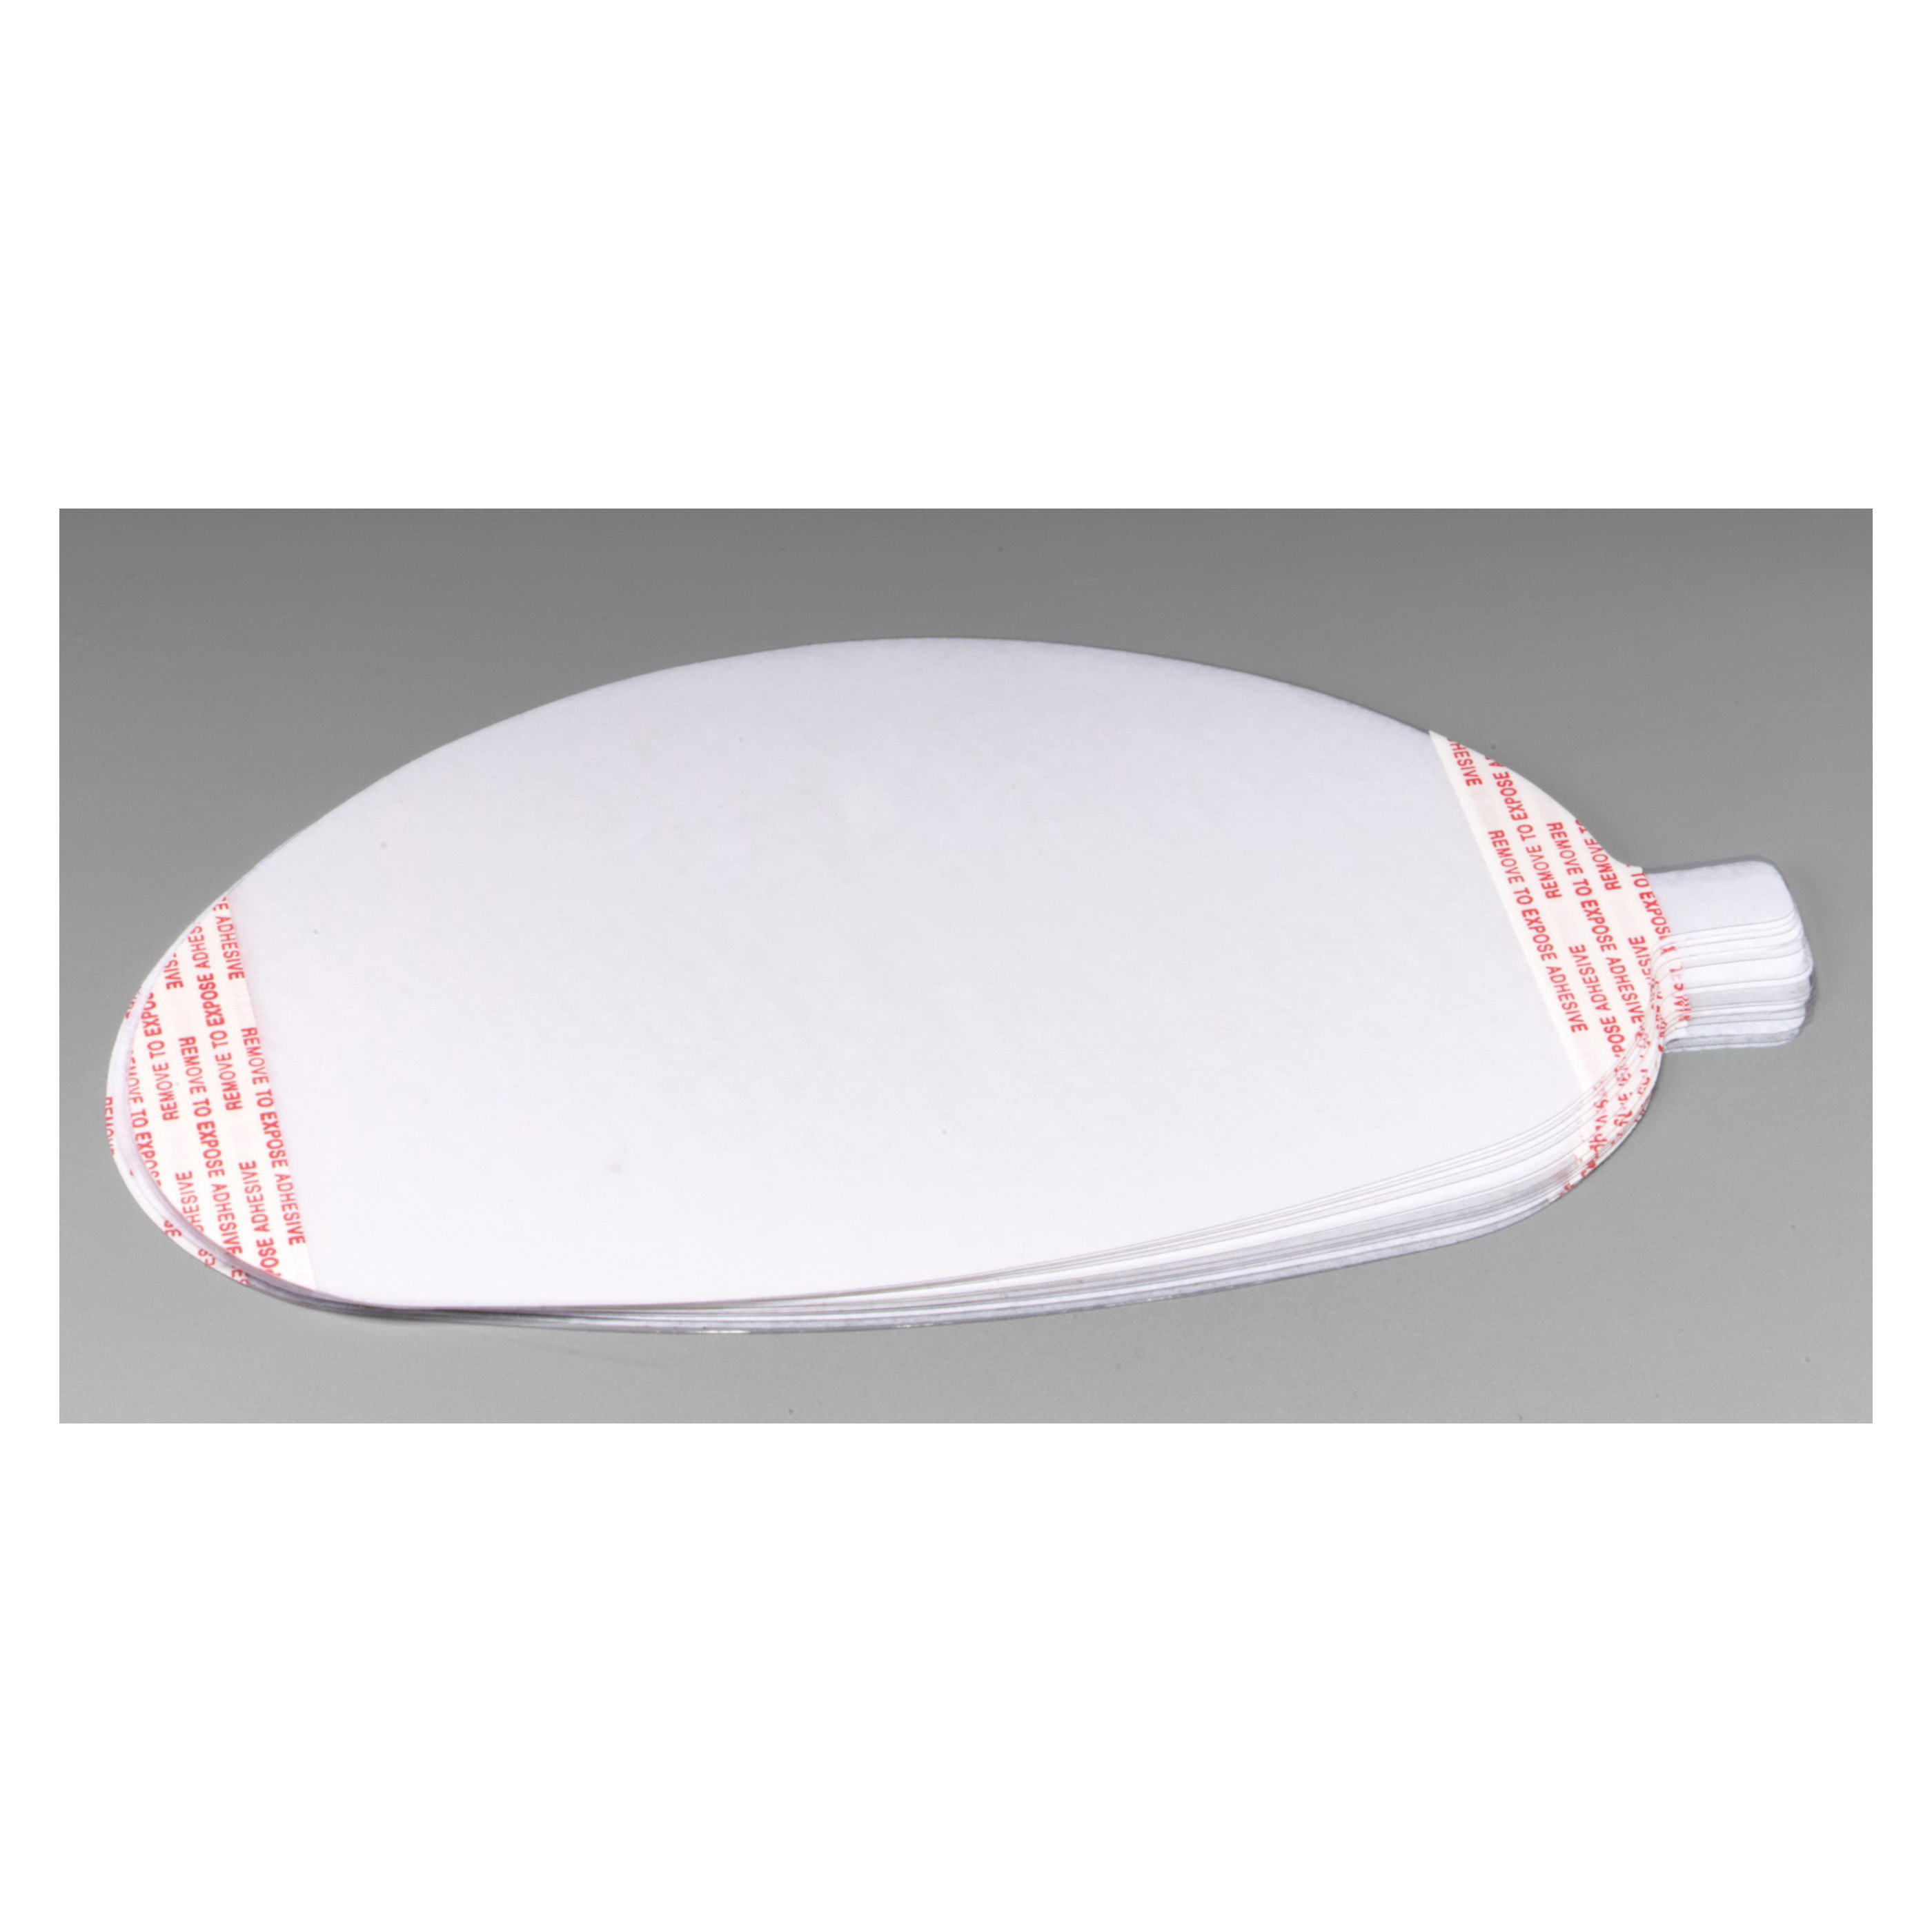 3M™ 021200-60417 Lens Cover, For Use With 7000 Series Full Facepiece Respirators, White